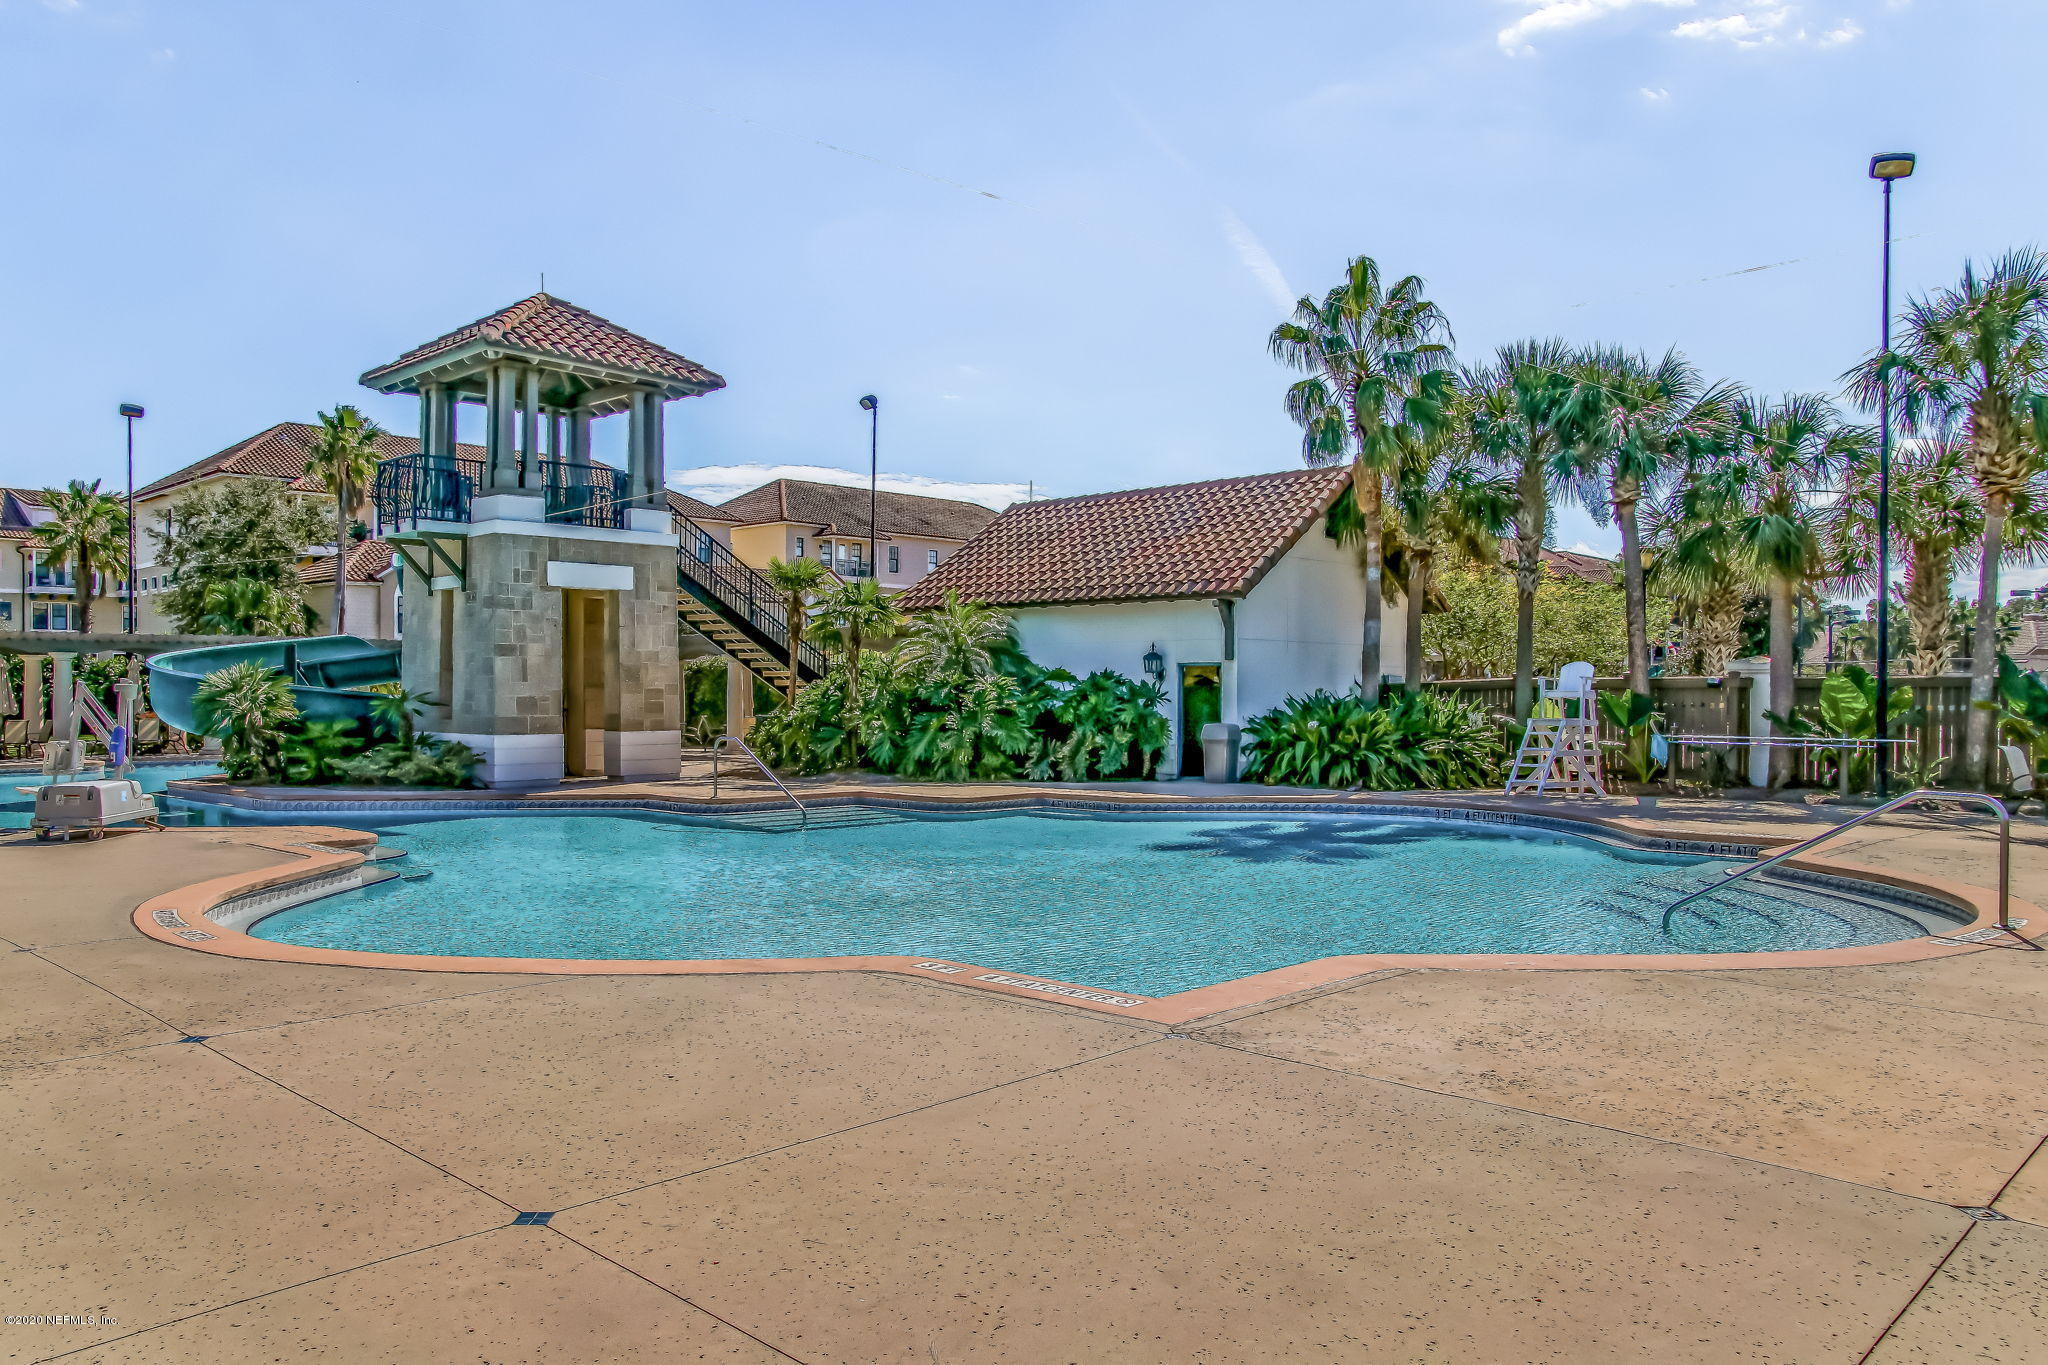 405 LA TRAVESIA FLORA, ST AUGUSTINE, FLORIDA 32095, 2 Bedrooms Bedrooms, ,2 BathroomsBathrooms,Residential,For sale,LA TRAVESIA FLORA,1079697